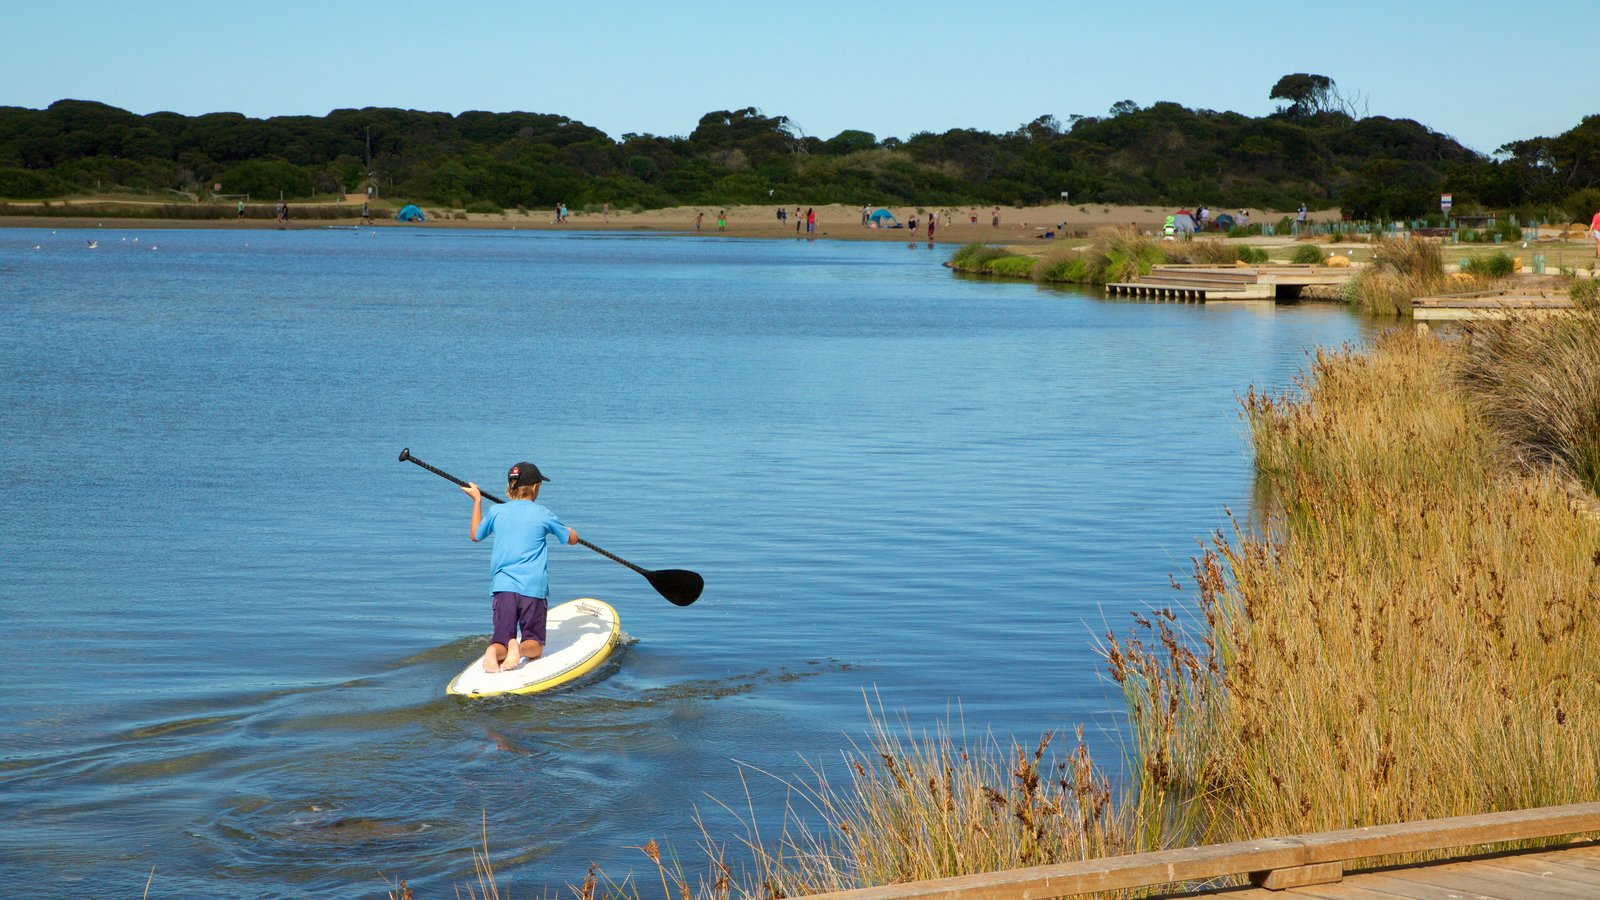 Anglesea which includes kayaking or canoeing and a river or creek as well as an individual child